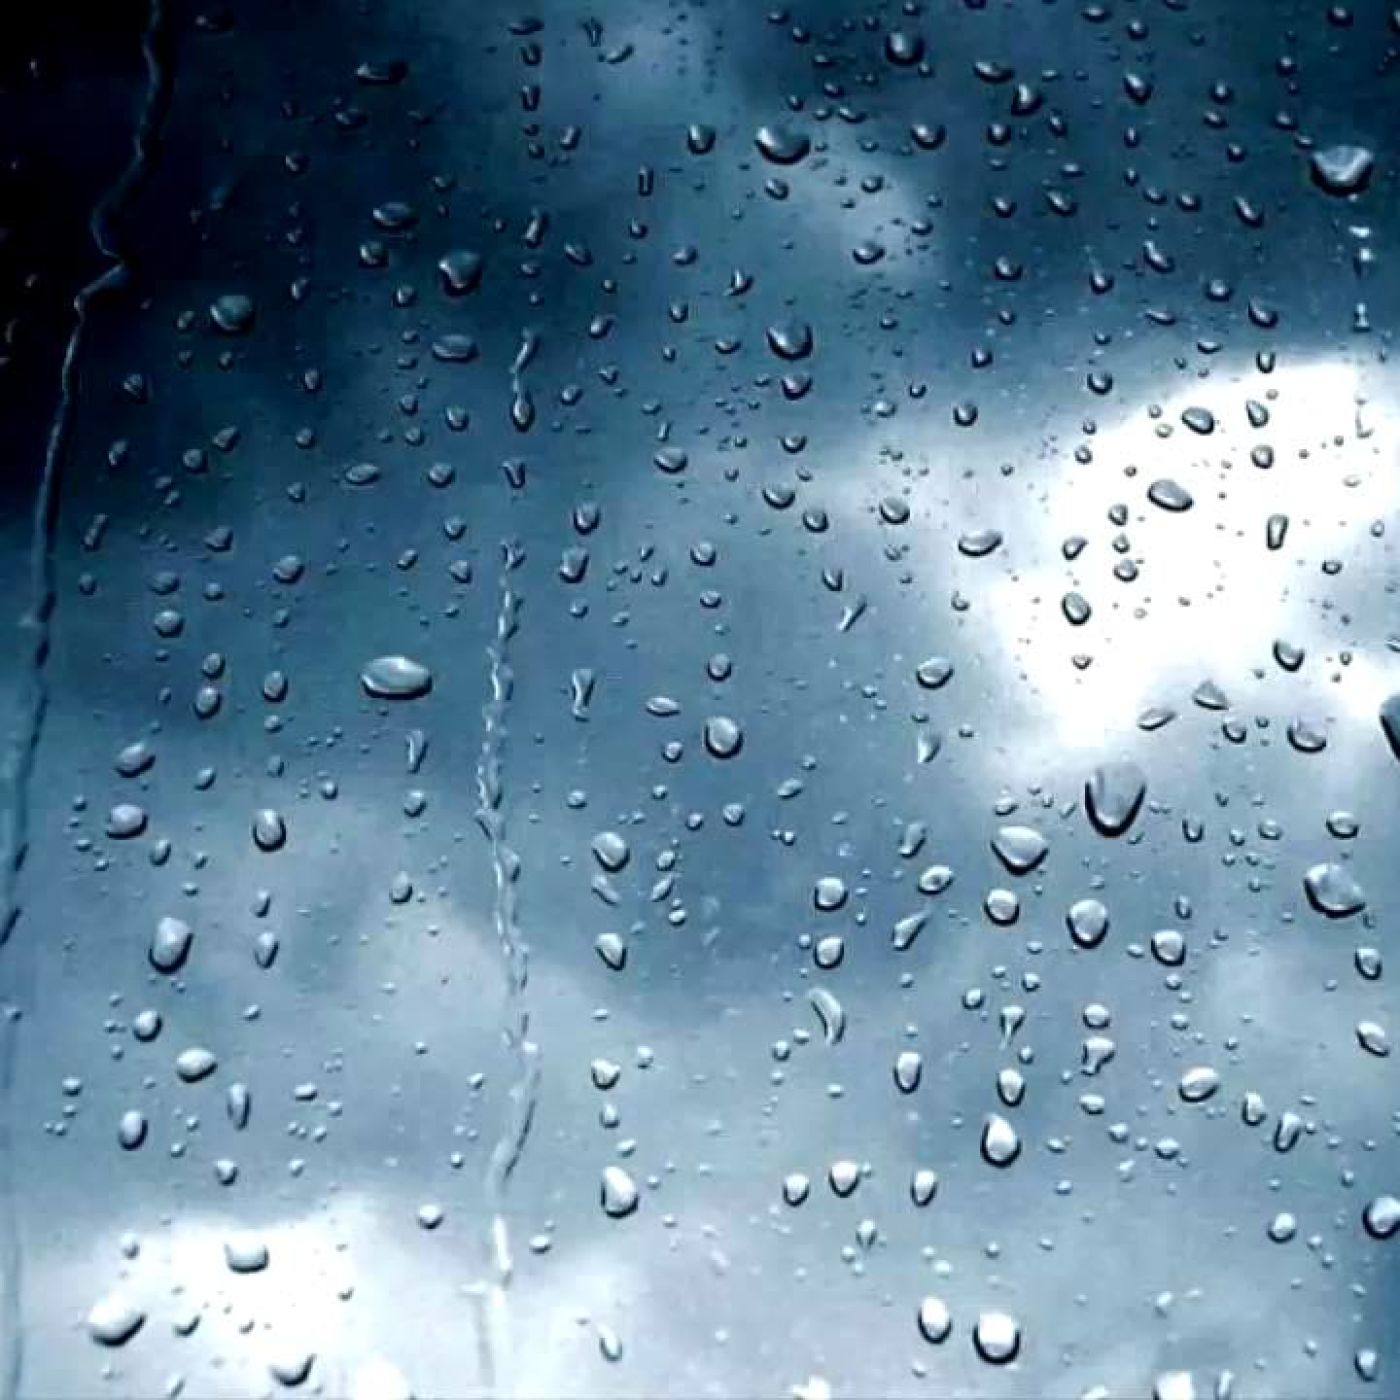 Heavy Thunderstorm and Relaxing Rain Sounds